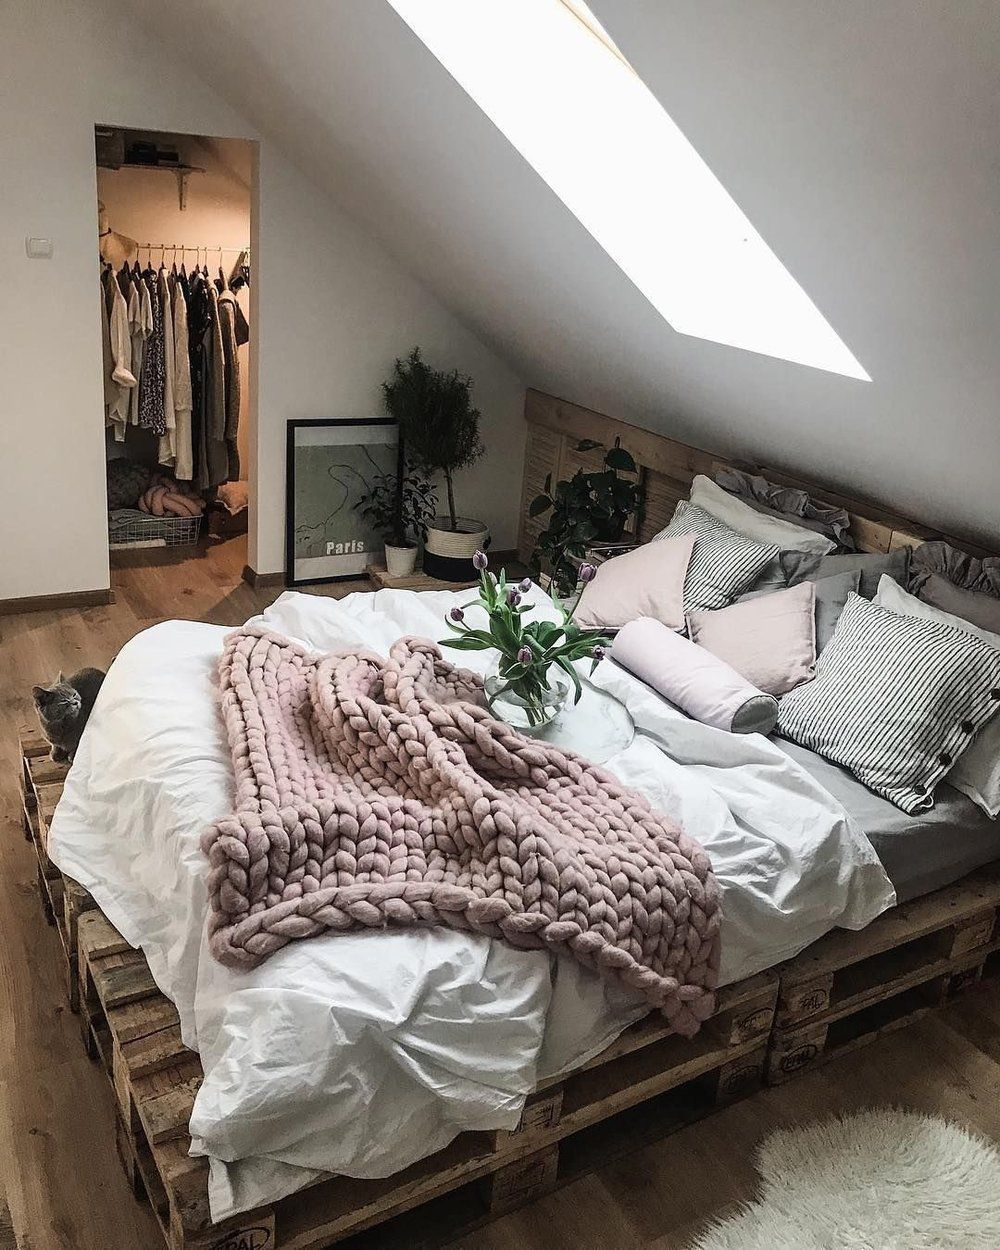 Contemporary Bedroom Designs You'll Dream … Not About, but Inside Them!